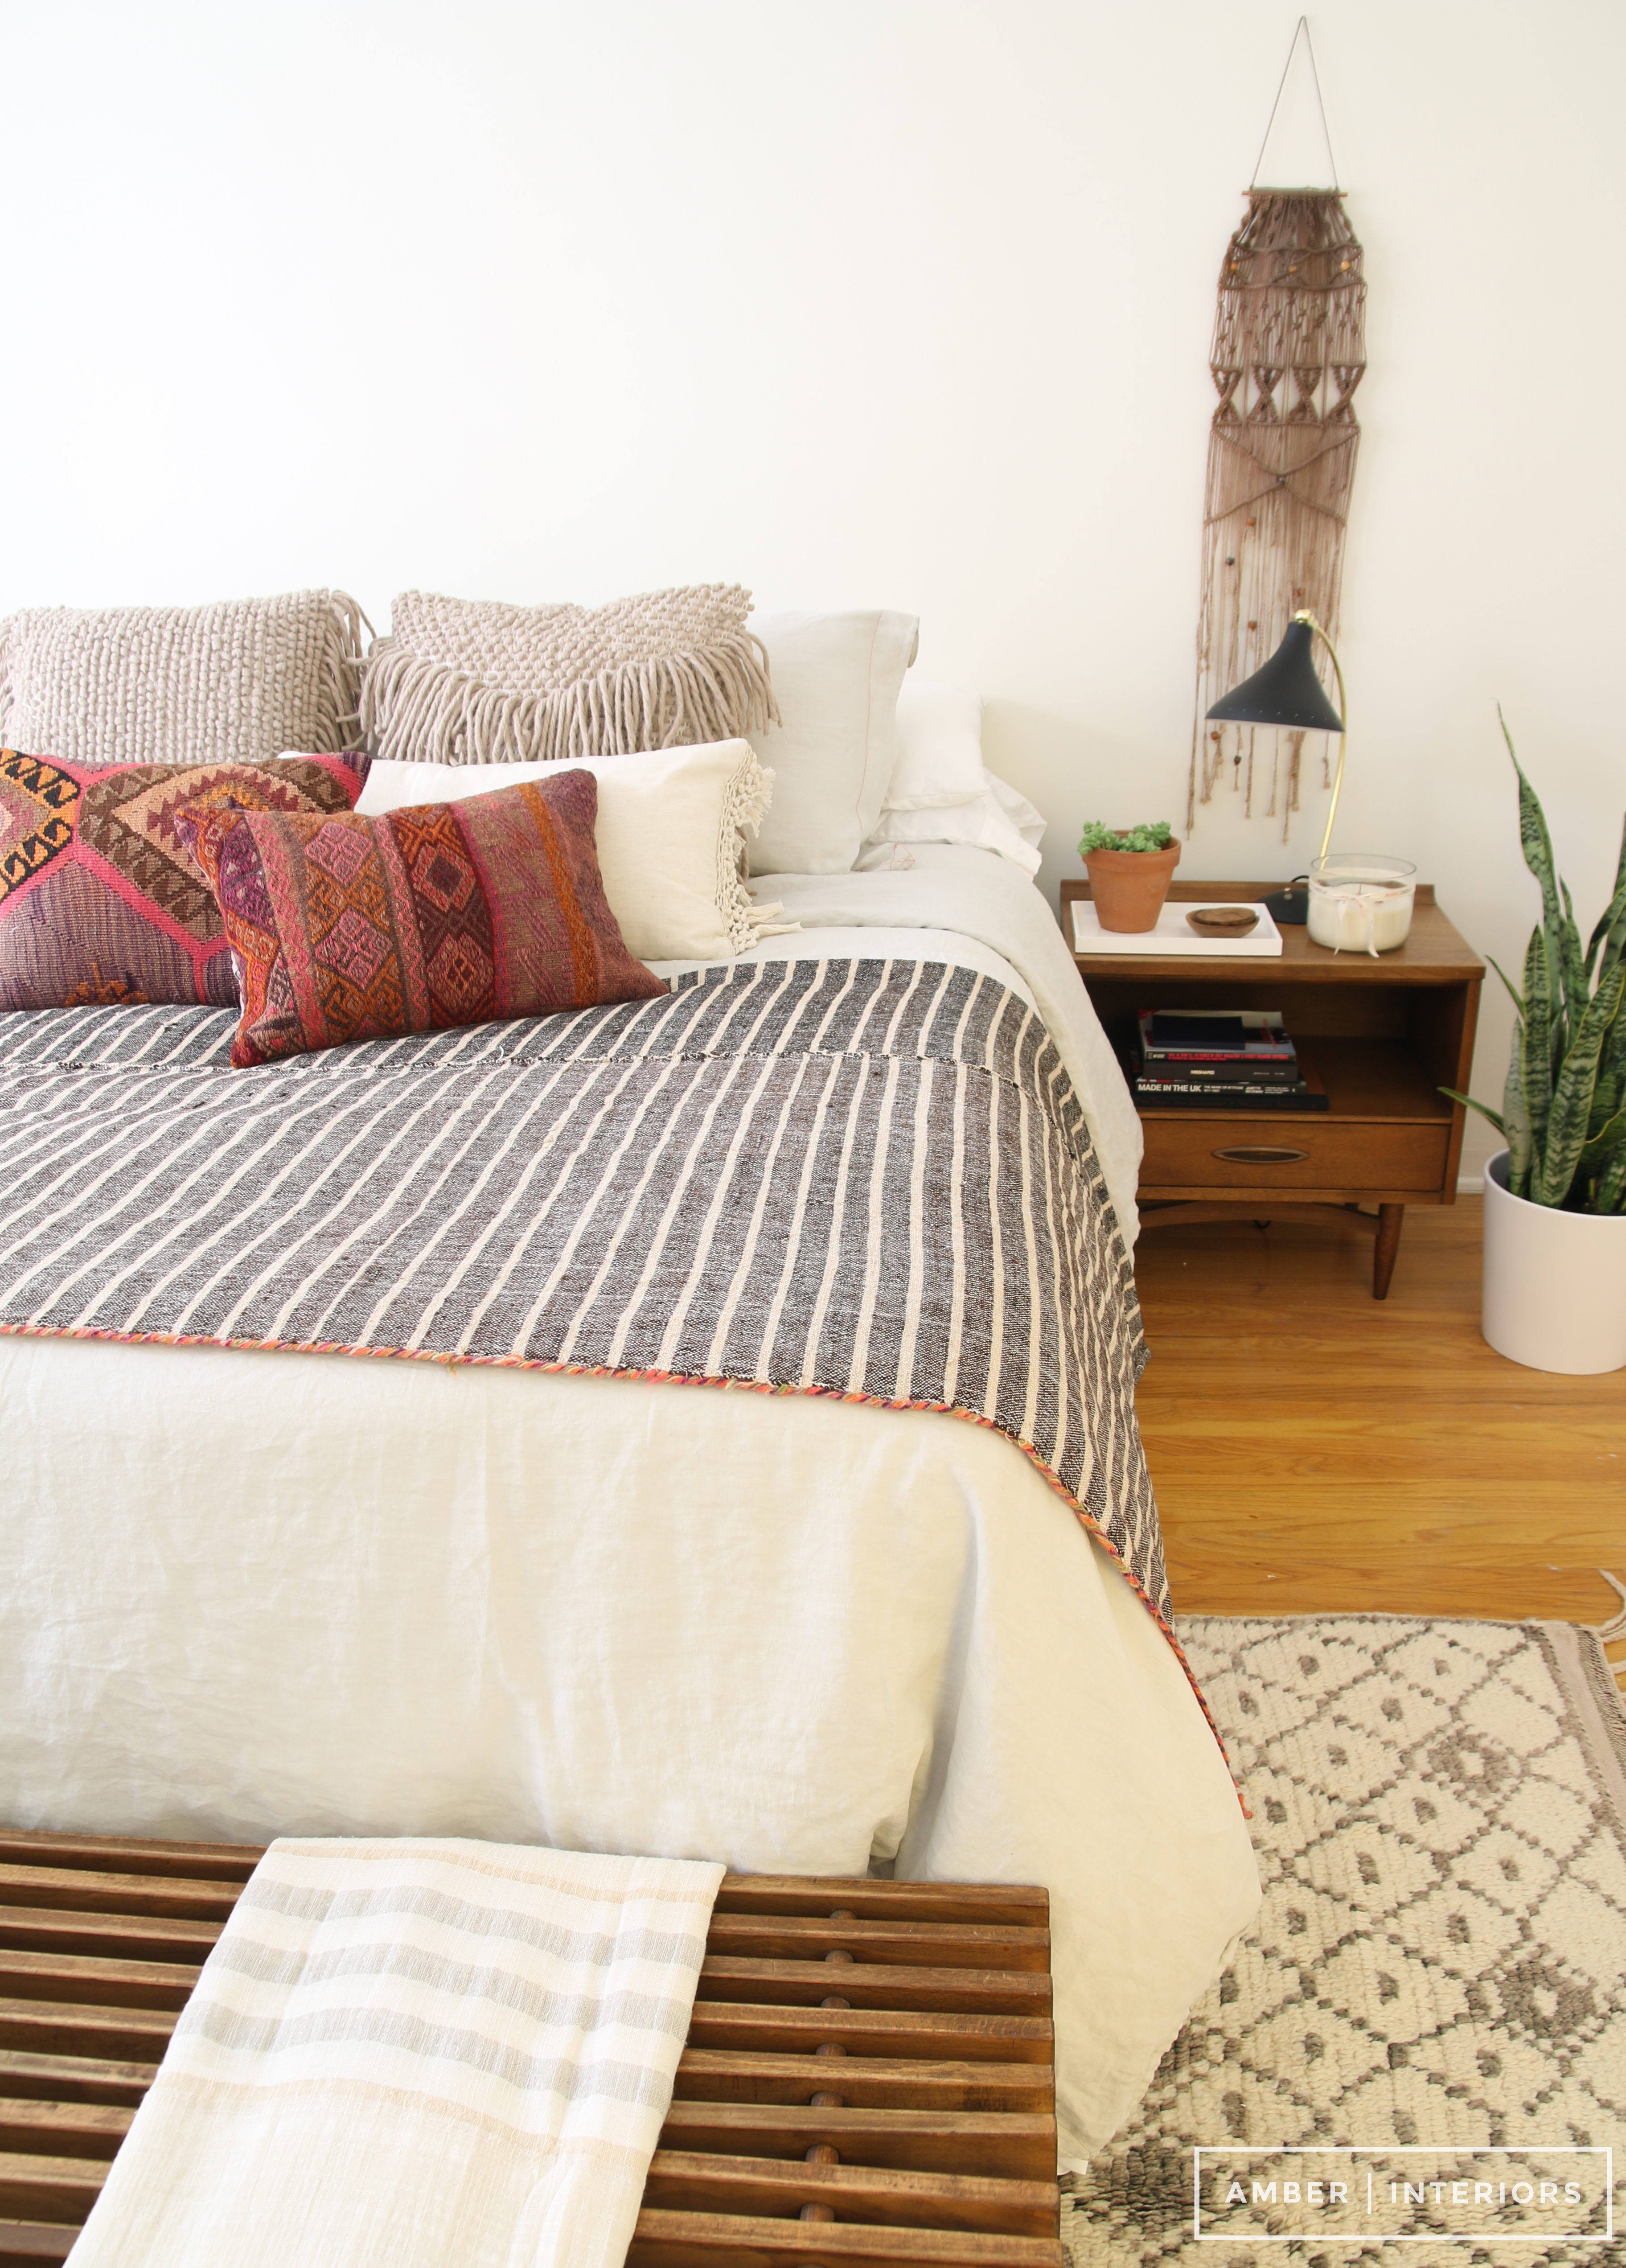 Best One Room Three Ways With Anthropologie – Amber Interiors This Month